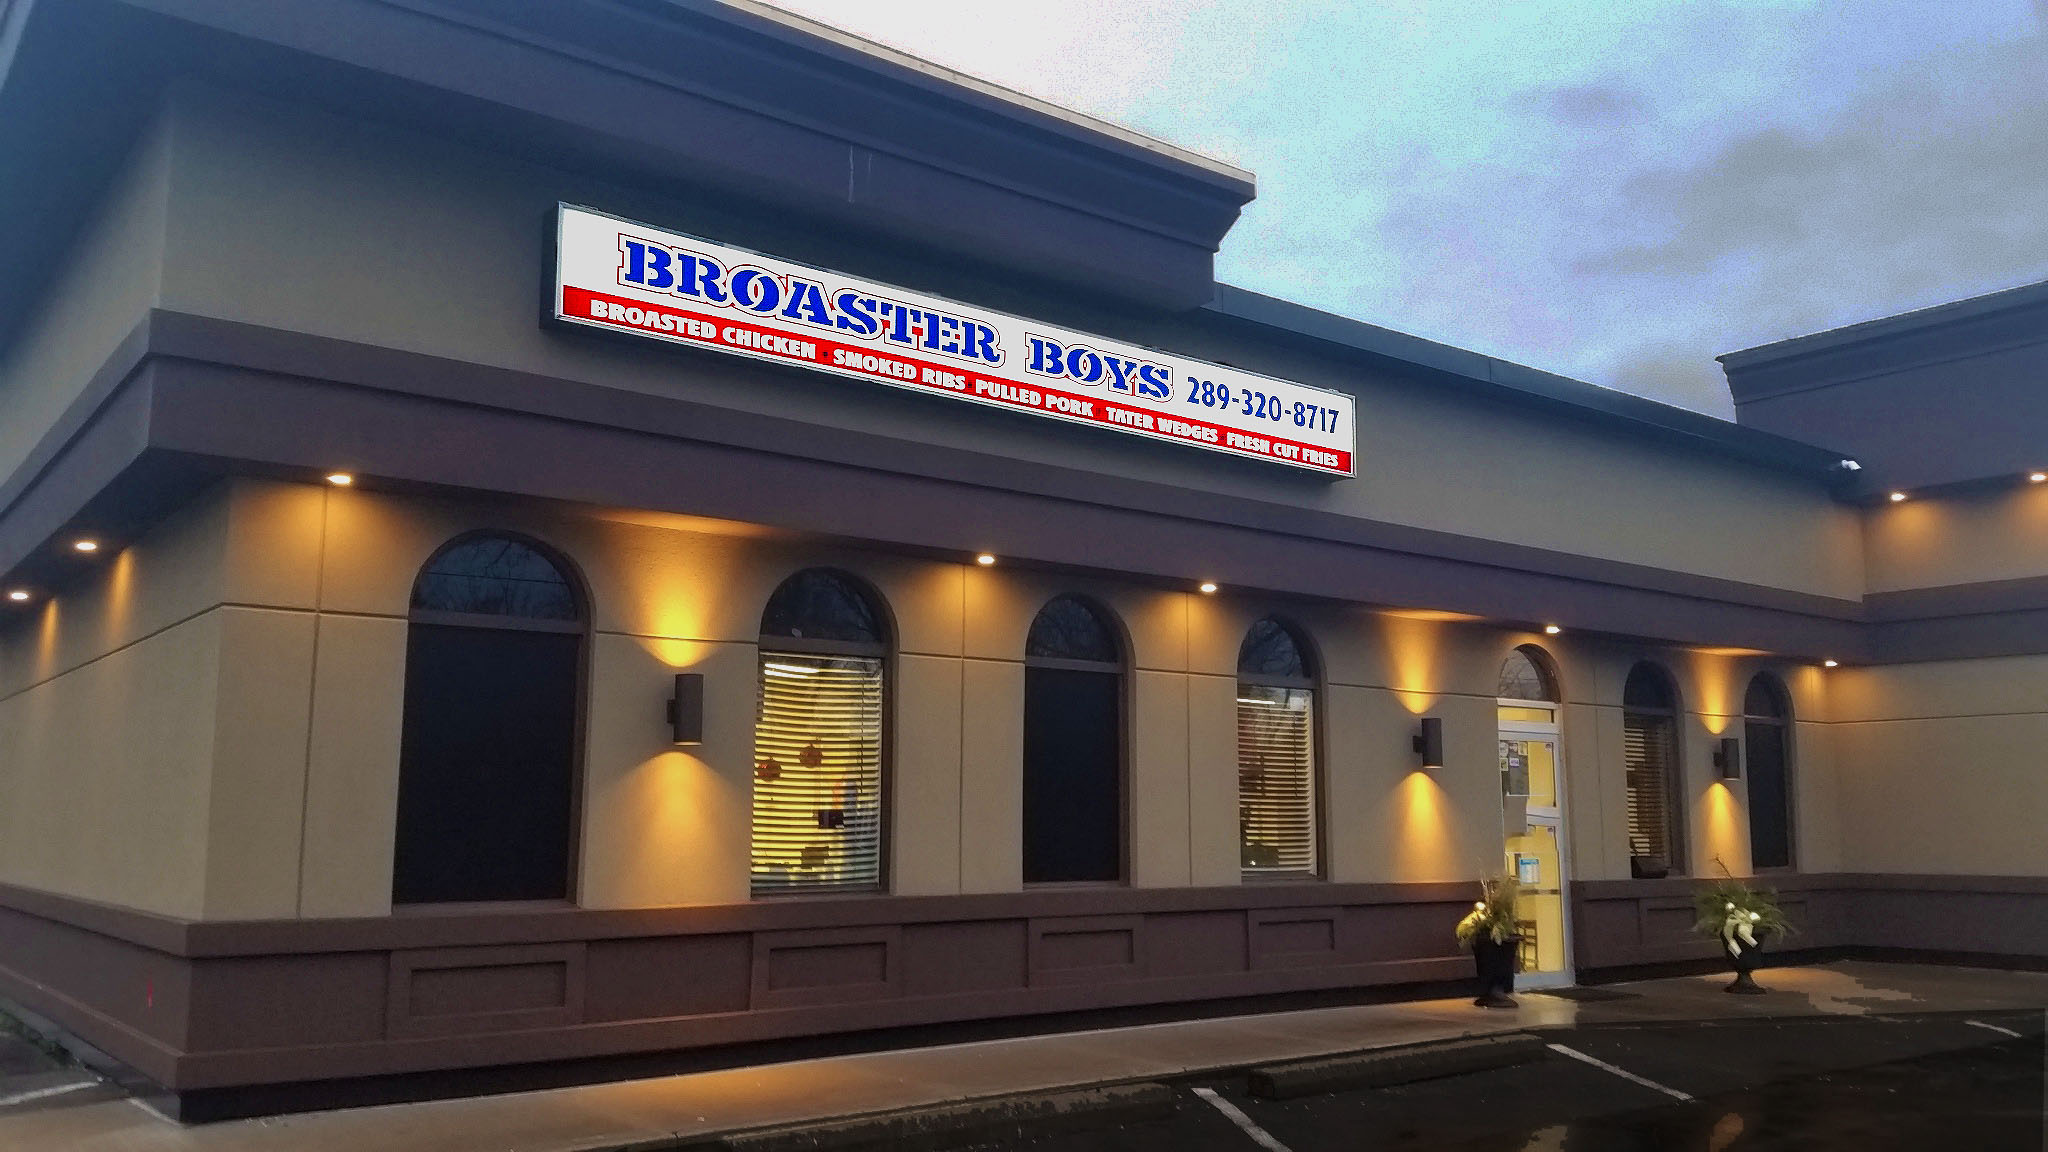 Broaster Boys Chicken and Smoke House